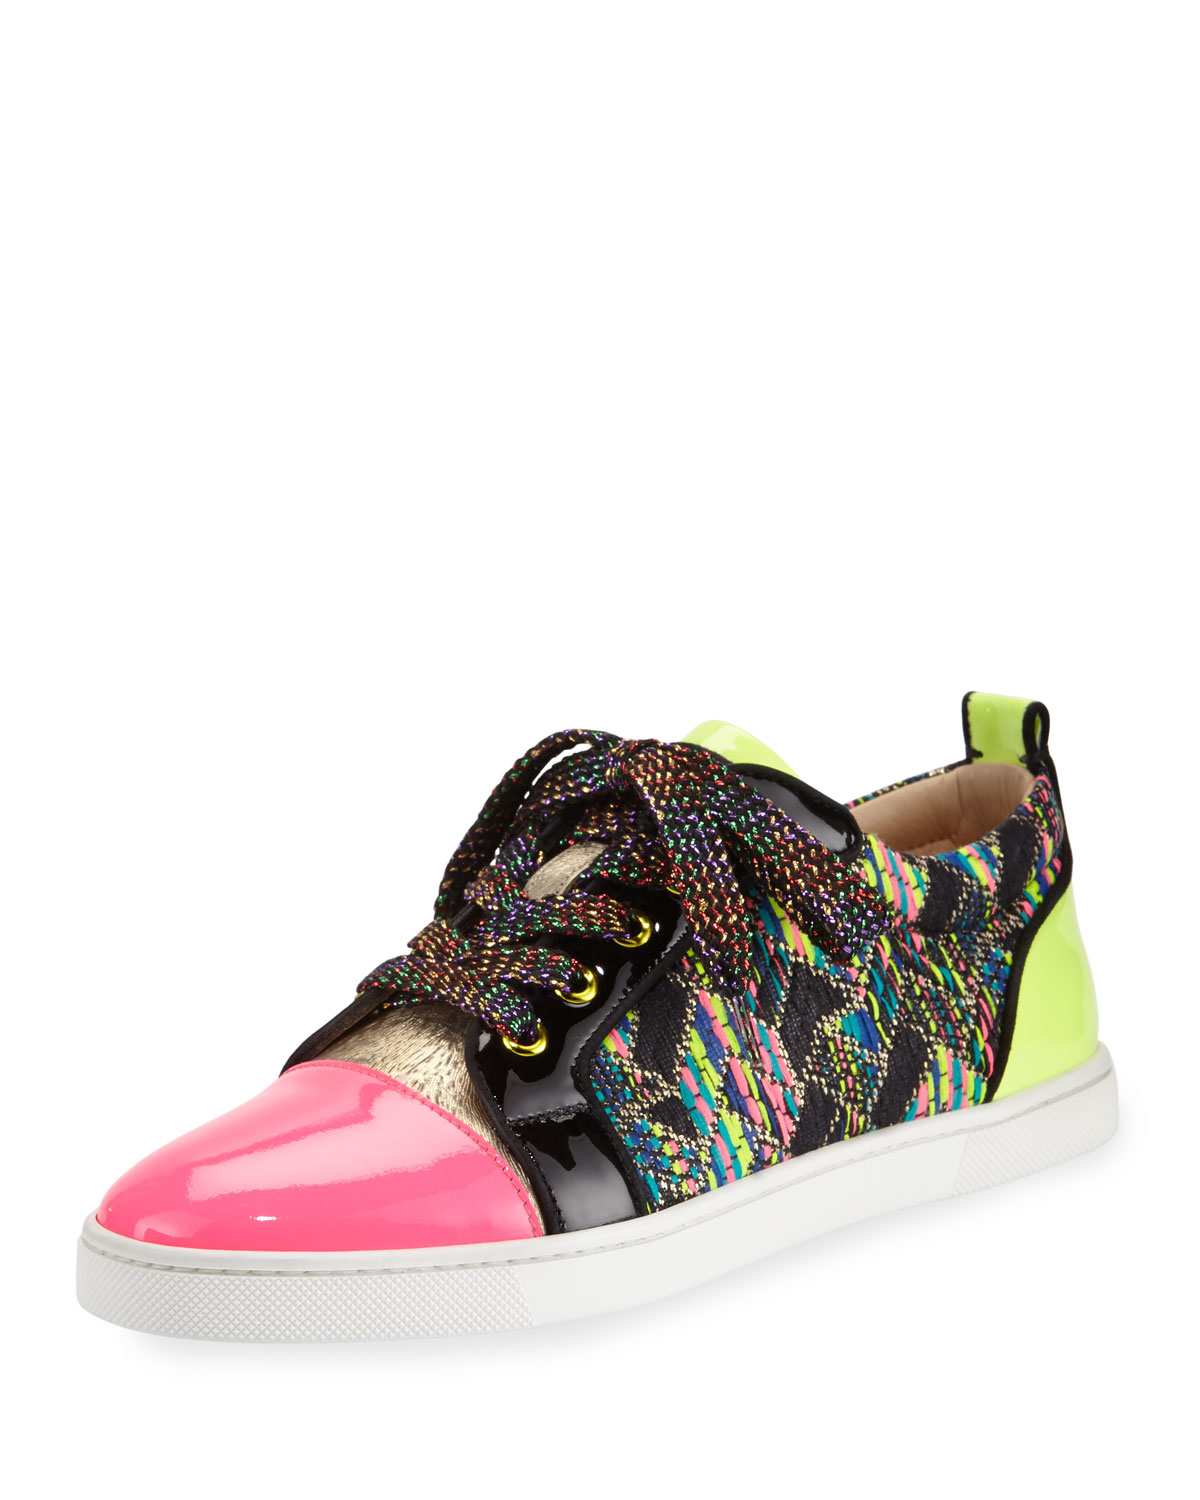 06fb1503c85 where to buy louboutin sneakers neon lights f8fc8 fca1a